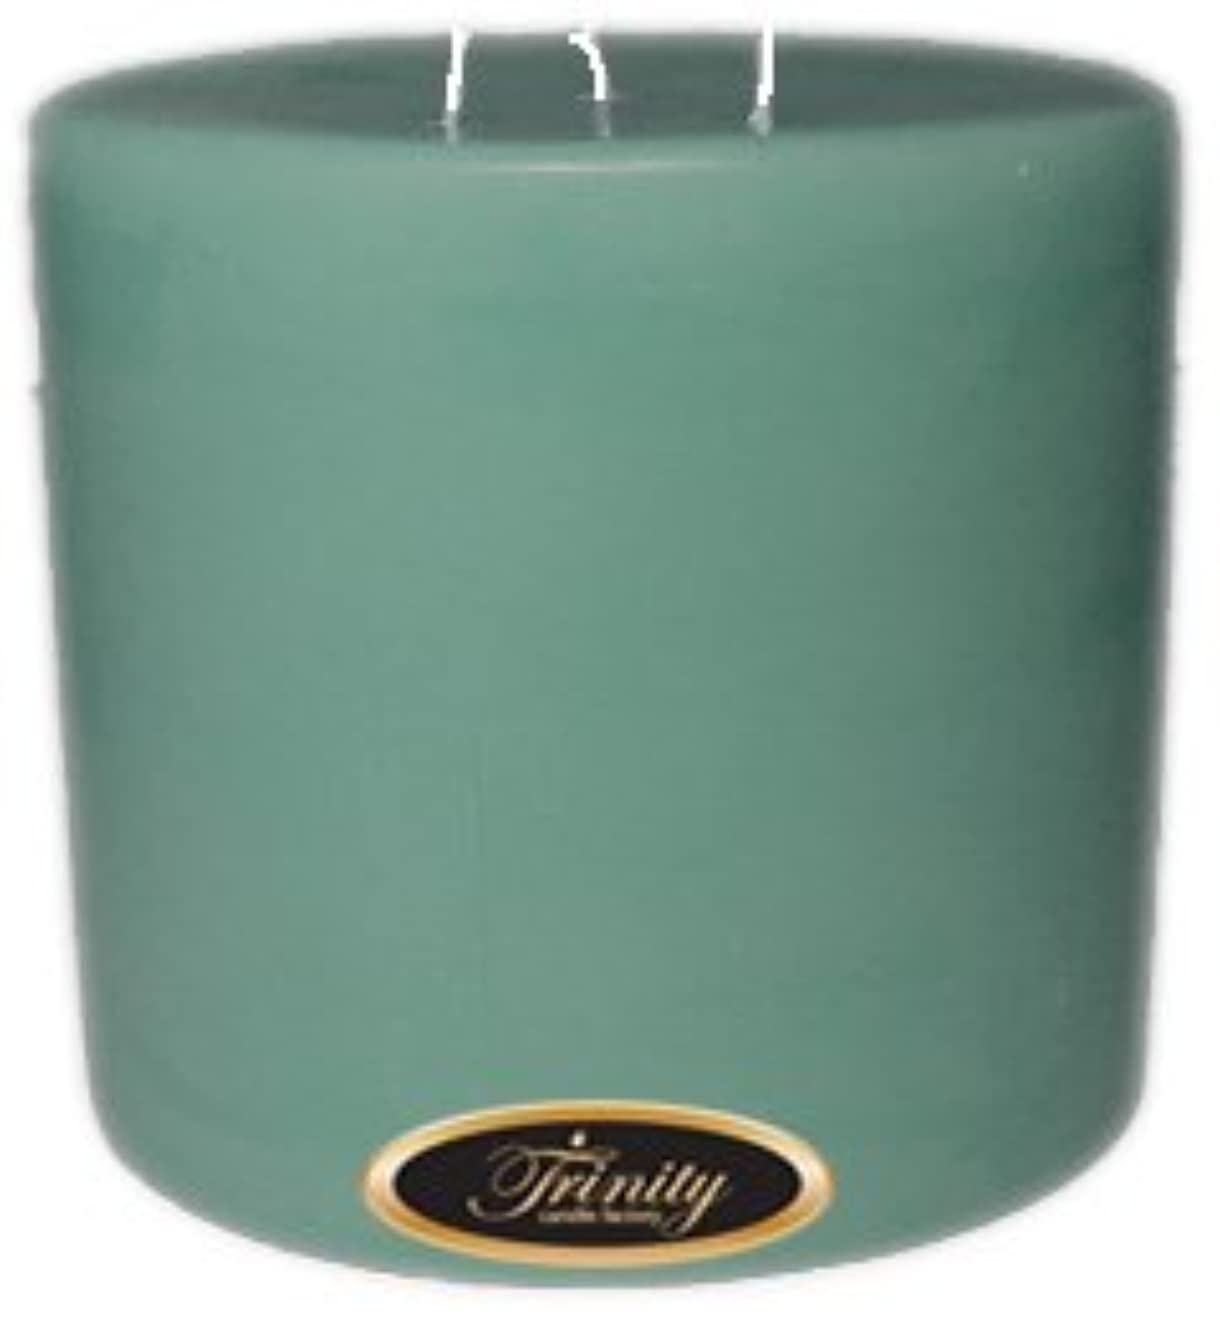 シルエット突破口スマイルTrinity Candle工場 – Morning Mist – Pillar Candle – 6 x 6